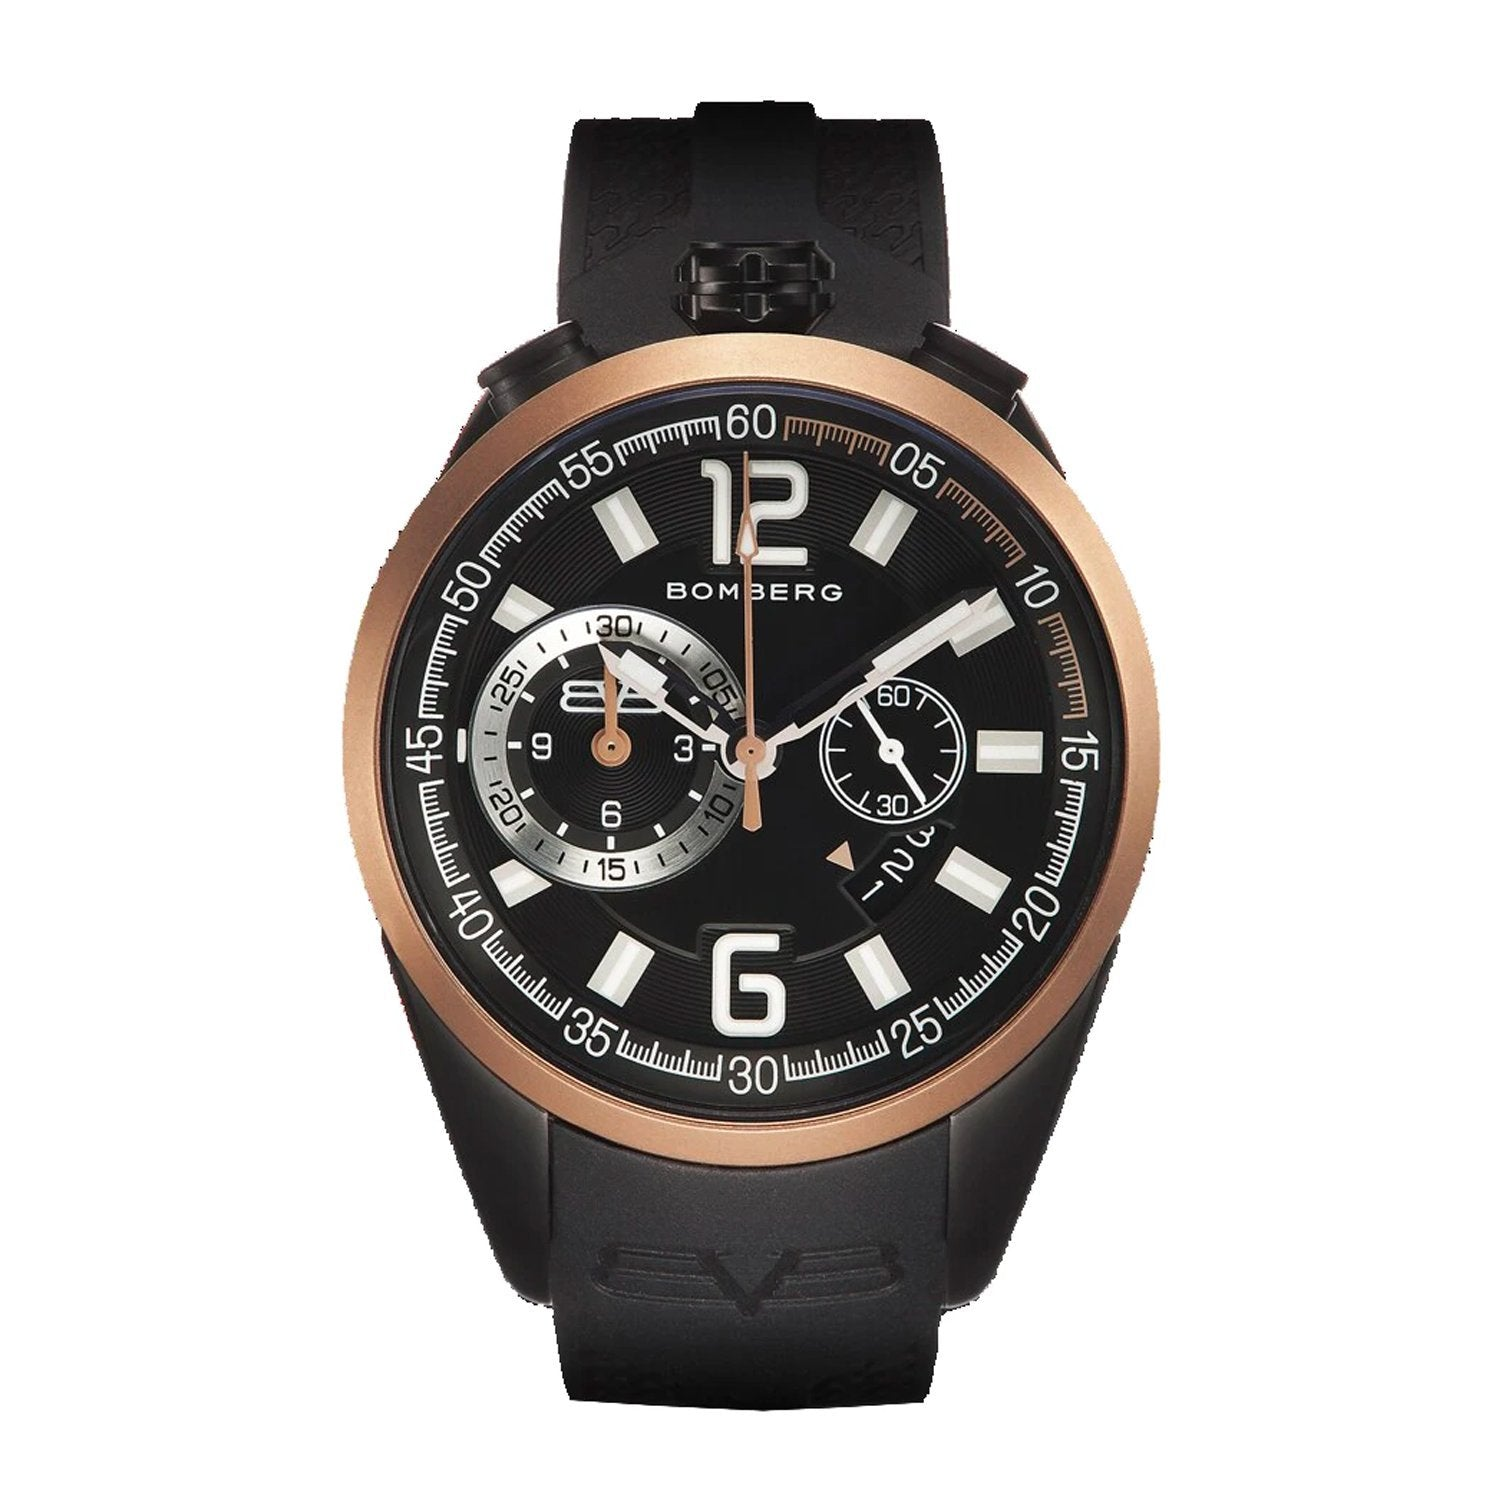 Bomberg 1968 Chronograph Black and Gold PVD - Watches & Crystals